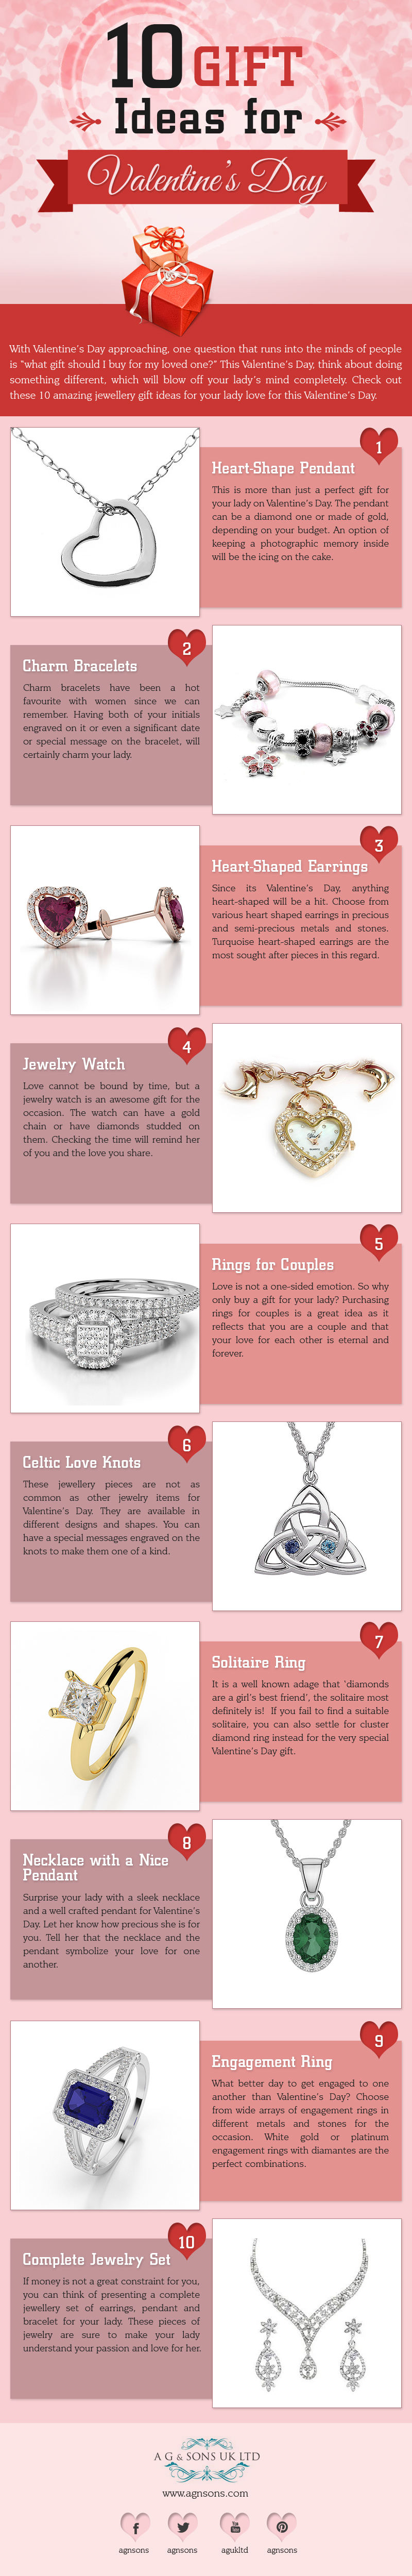 Top 10 valentine s day gift ideas for her infographic Top ten valentine gifts for her